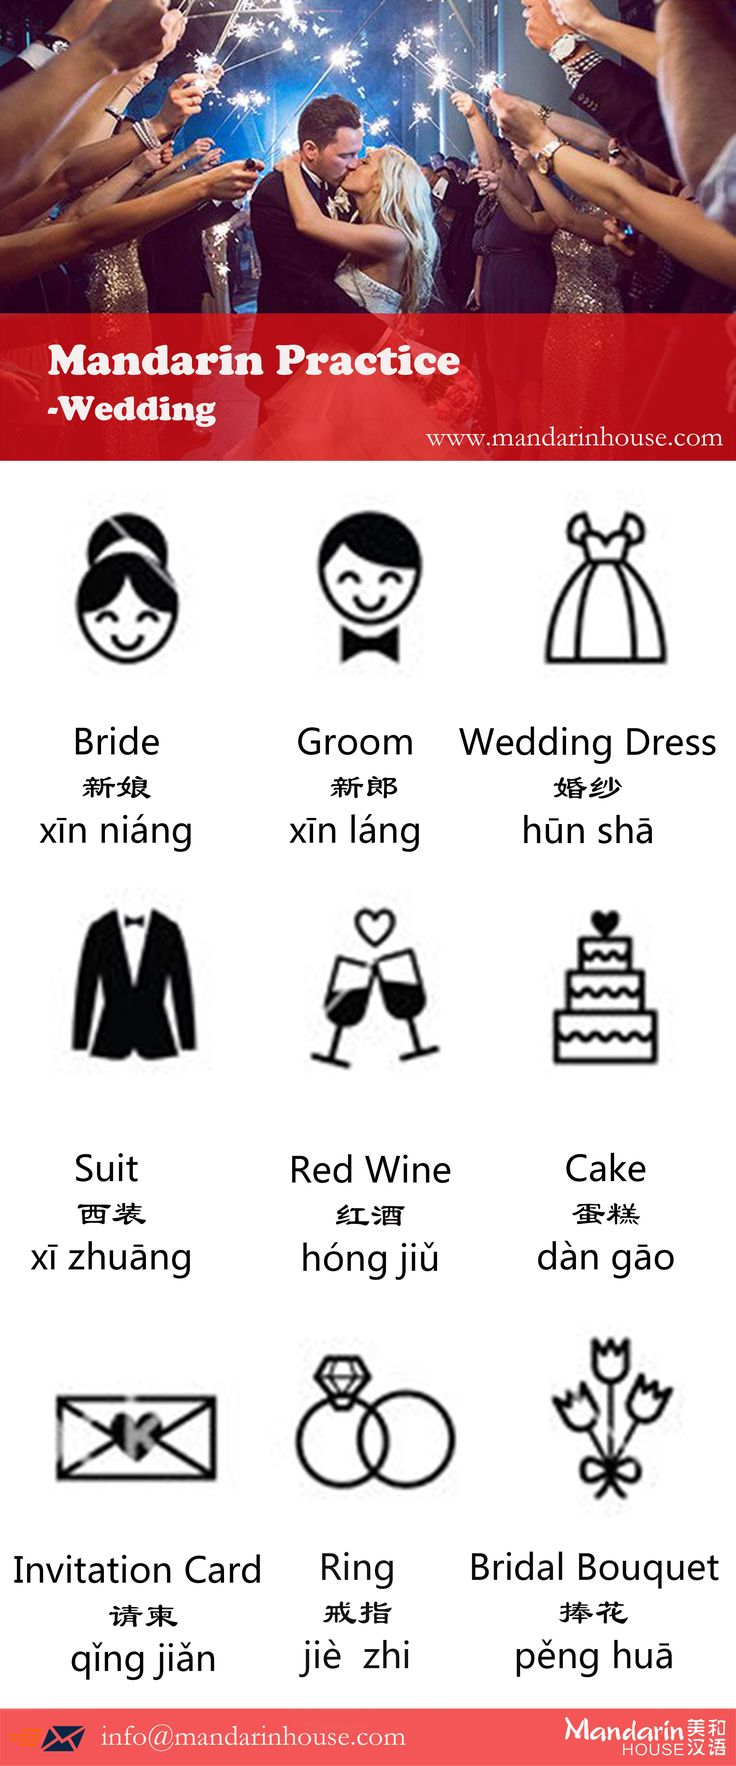 Wedding in Chinese.For more info please contact: bodi.li@mandarinhouse.cn The best Mandarin School in China.